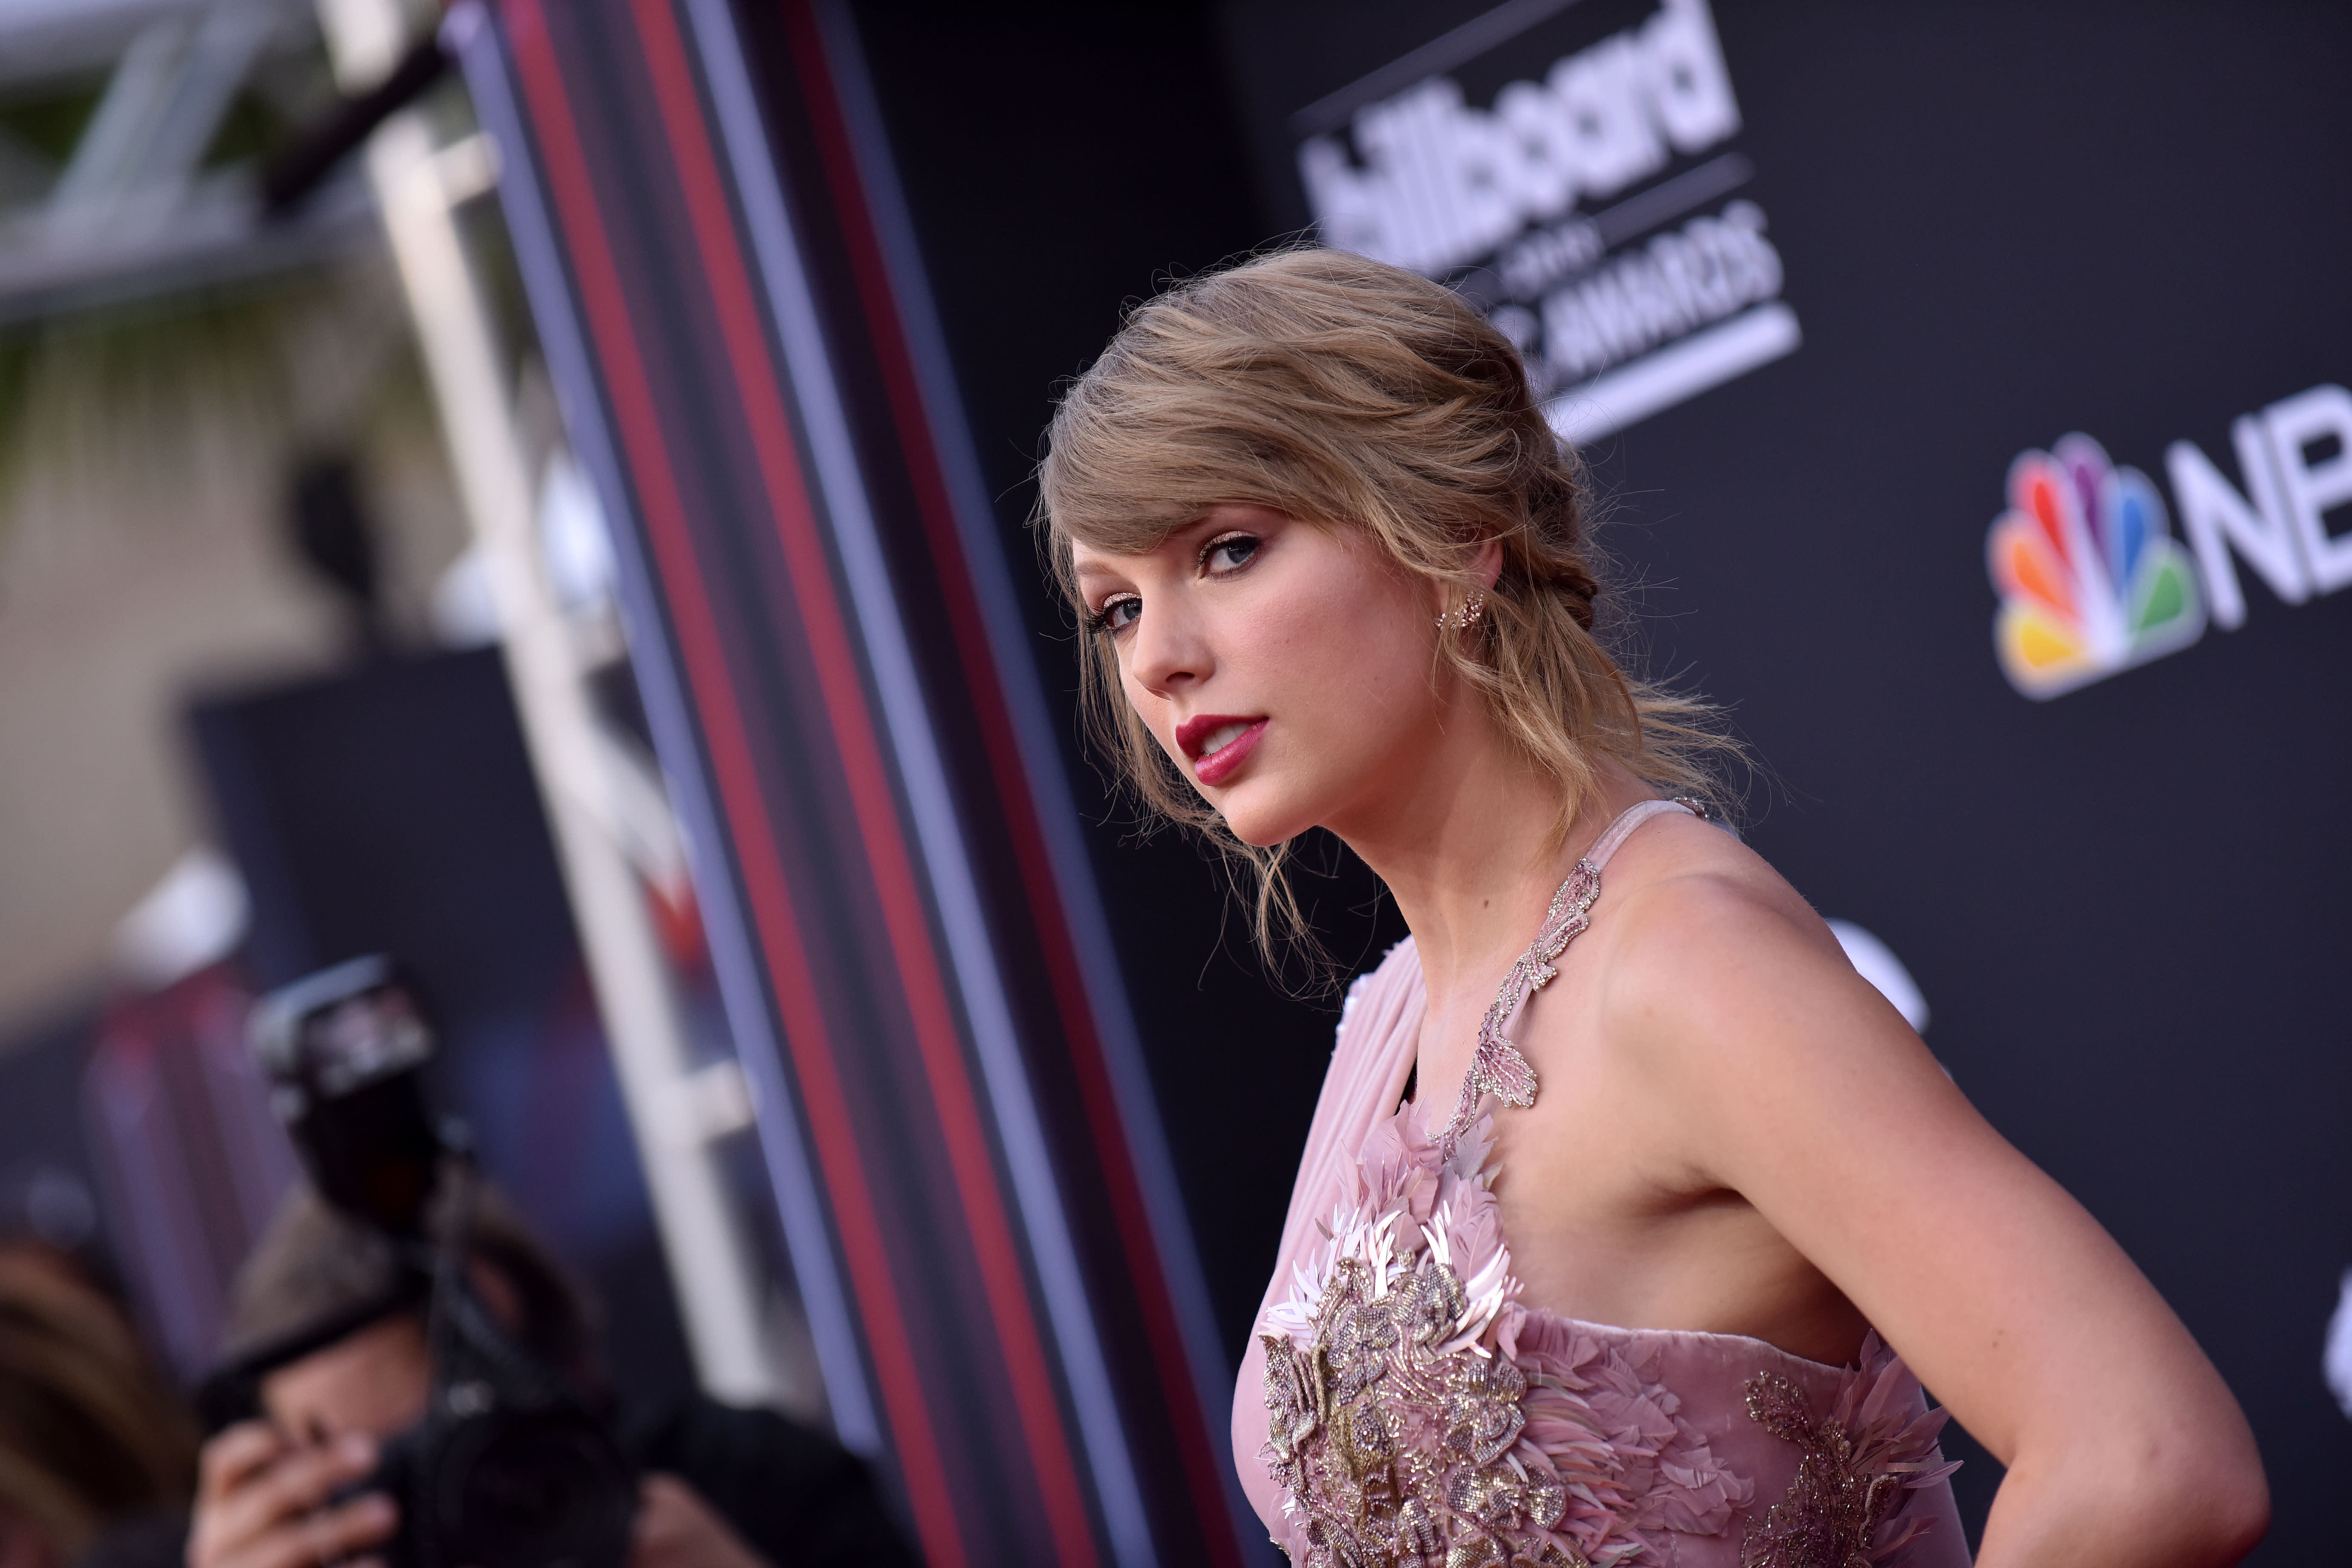 Taylor Swift says this was the moment she noticed sexism in the music industry